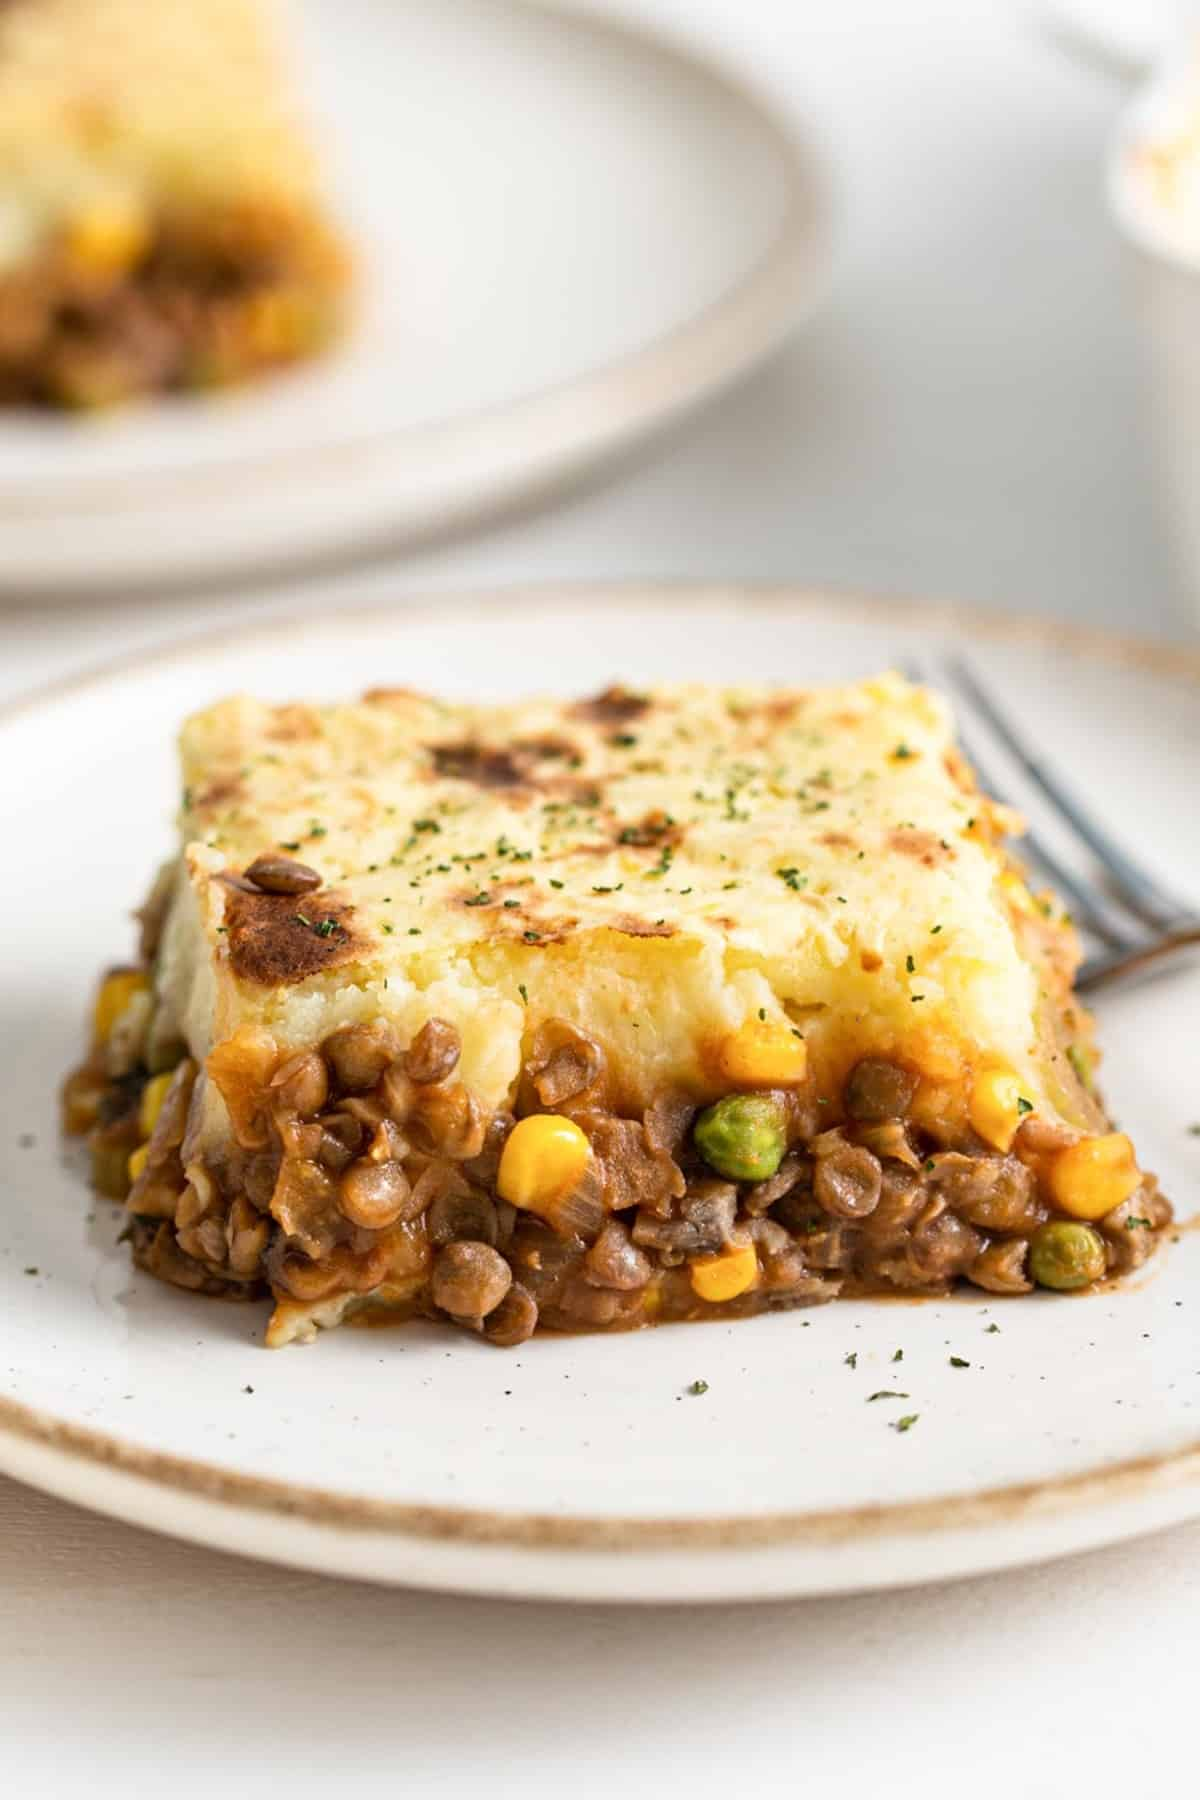 piece of lentil sheperds pie on a white plate